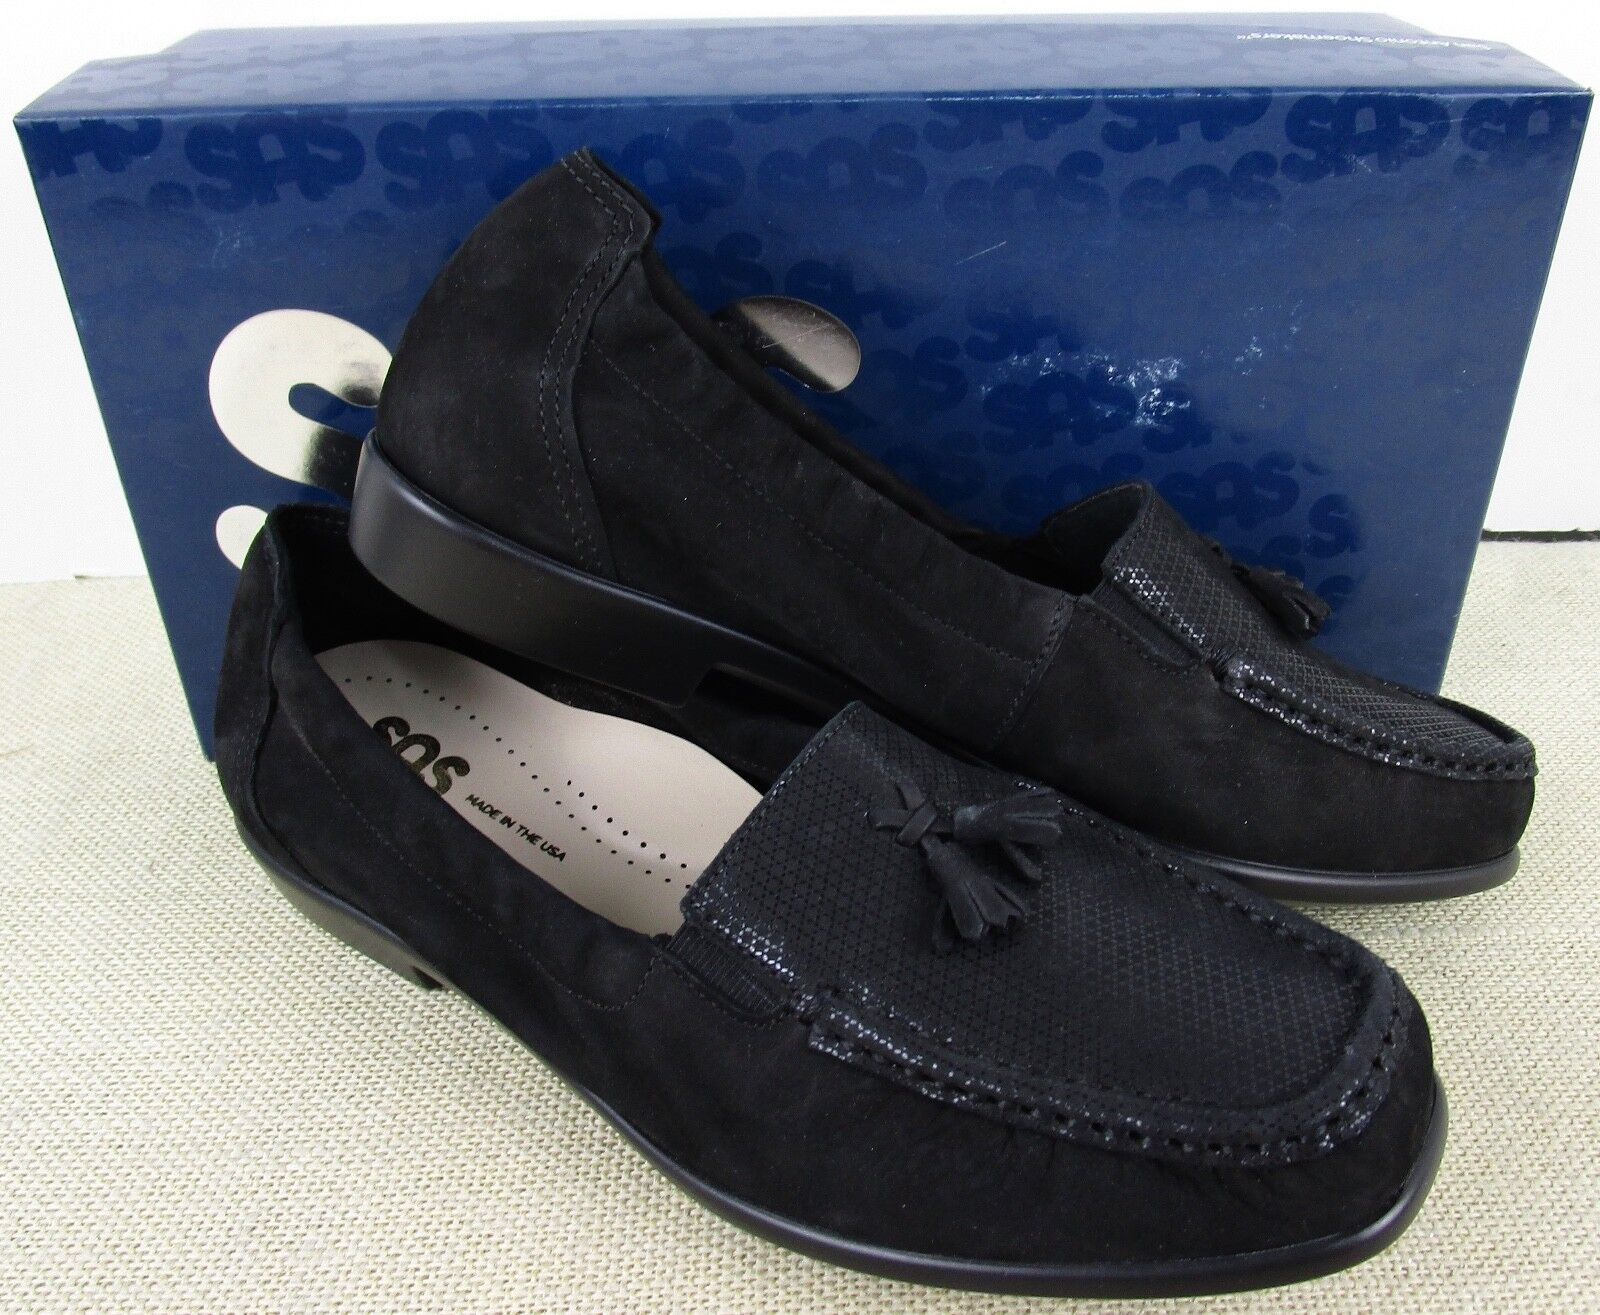 SAS HOPE ONYX WOMEN'S BLACK LEATHER SUED PENNY IN LOAFER SLIP ON Schuhe NEW IN PENNY BOX 40878b